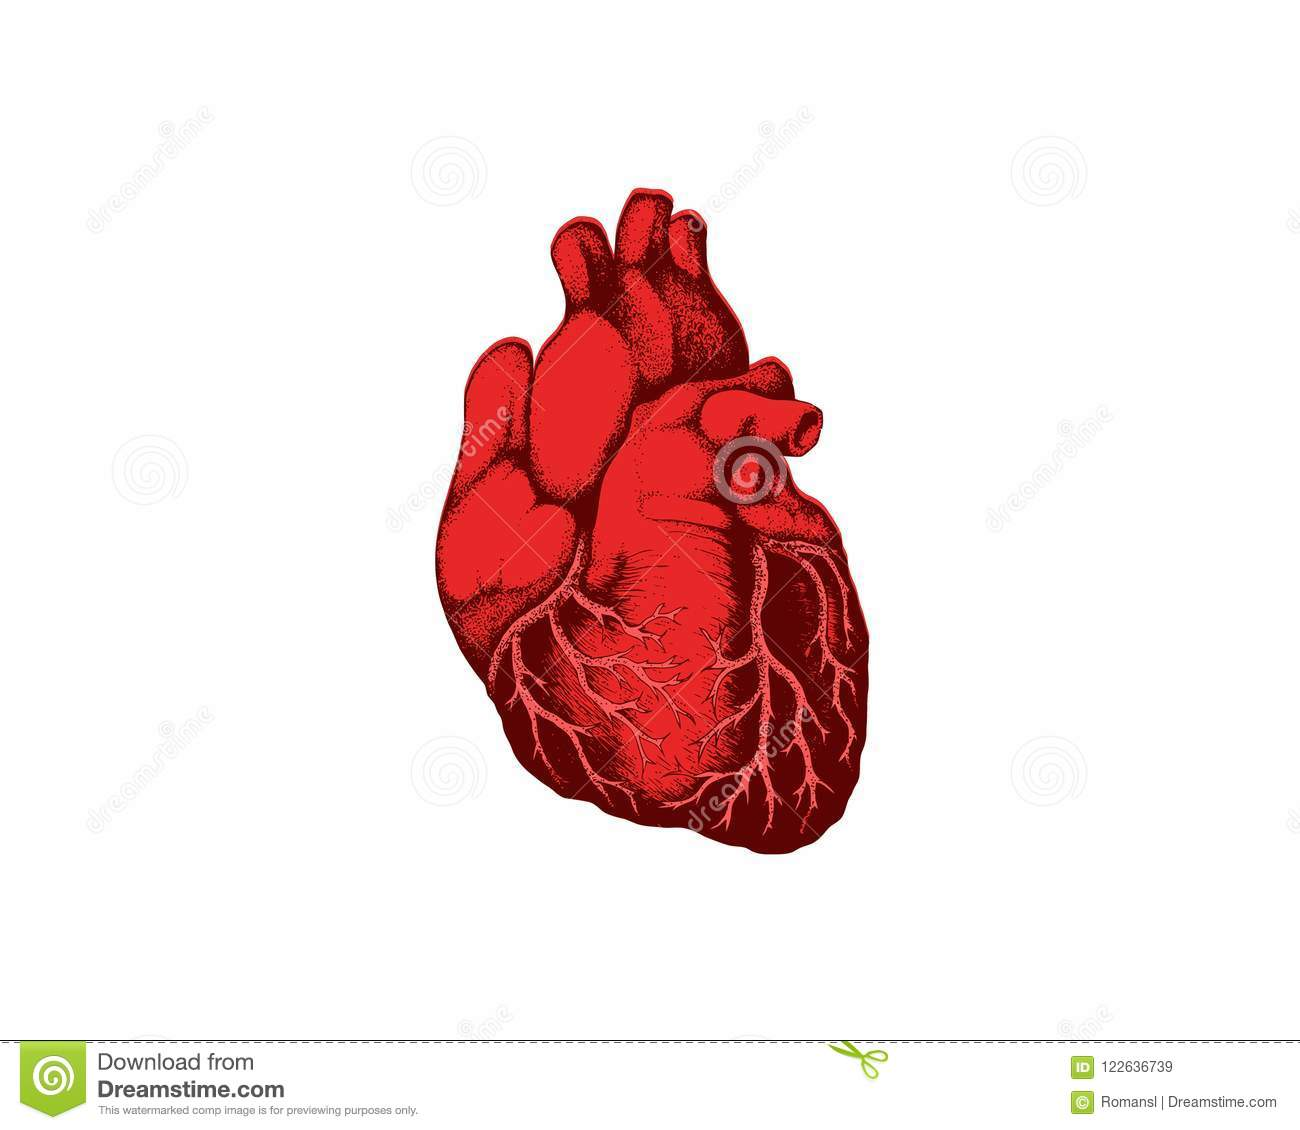 Realistic Detailed Human Anatomy Heart Closeup View Cardiovascular ...